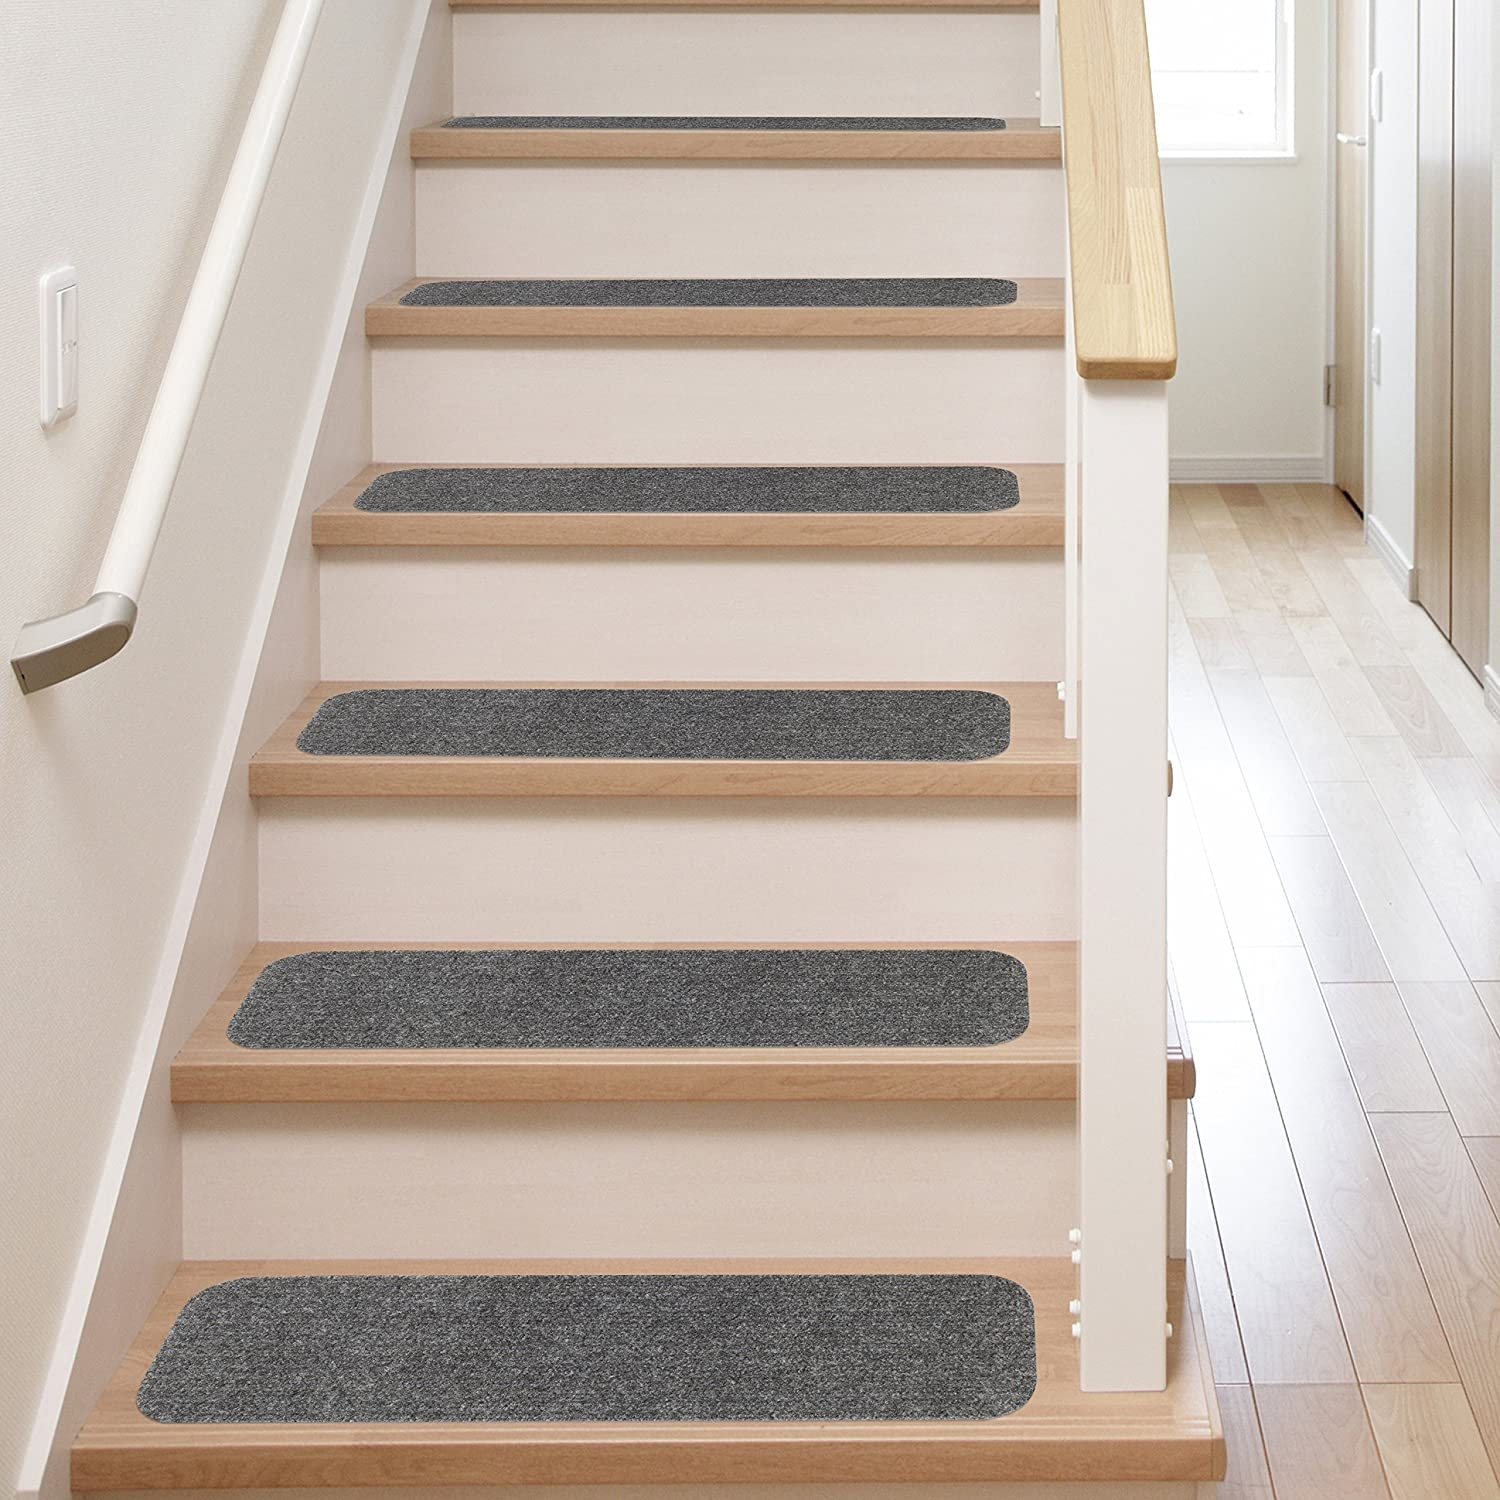 13 Stair Treads Non Slip Carpet Pads Easy Tape Installation | Carpet Treads For Wooden Stairs | Commercial Rubber | Rectangular Cord Treads | Carpet Wrapped | Self Adhesive | Different Style Stair